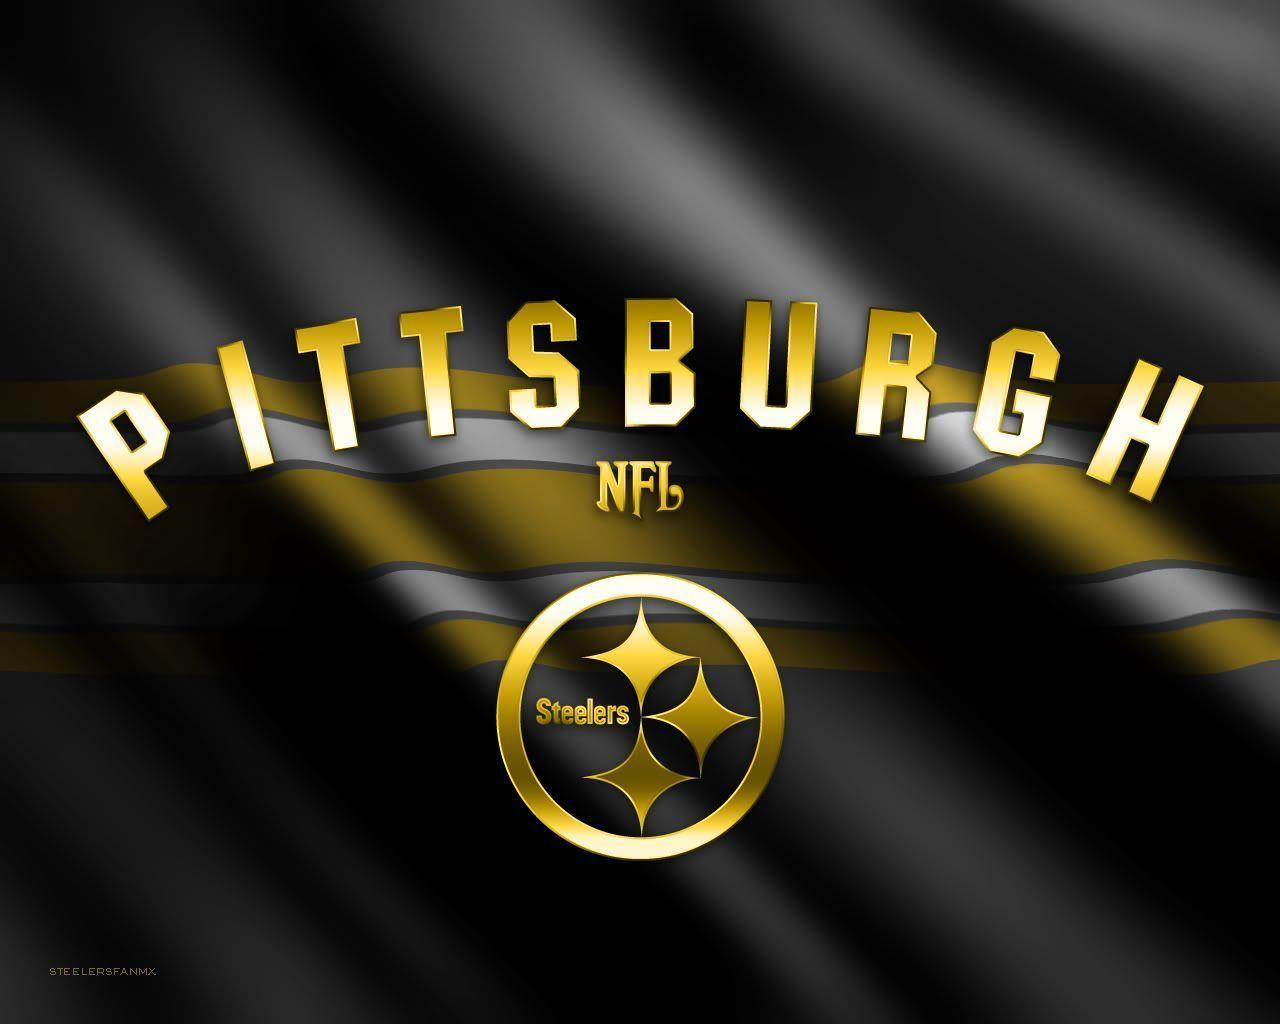 Pittsburgh Steeler NFL Flag 68205 Wallpapers HD Desktop